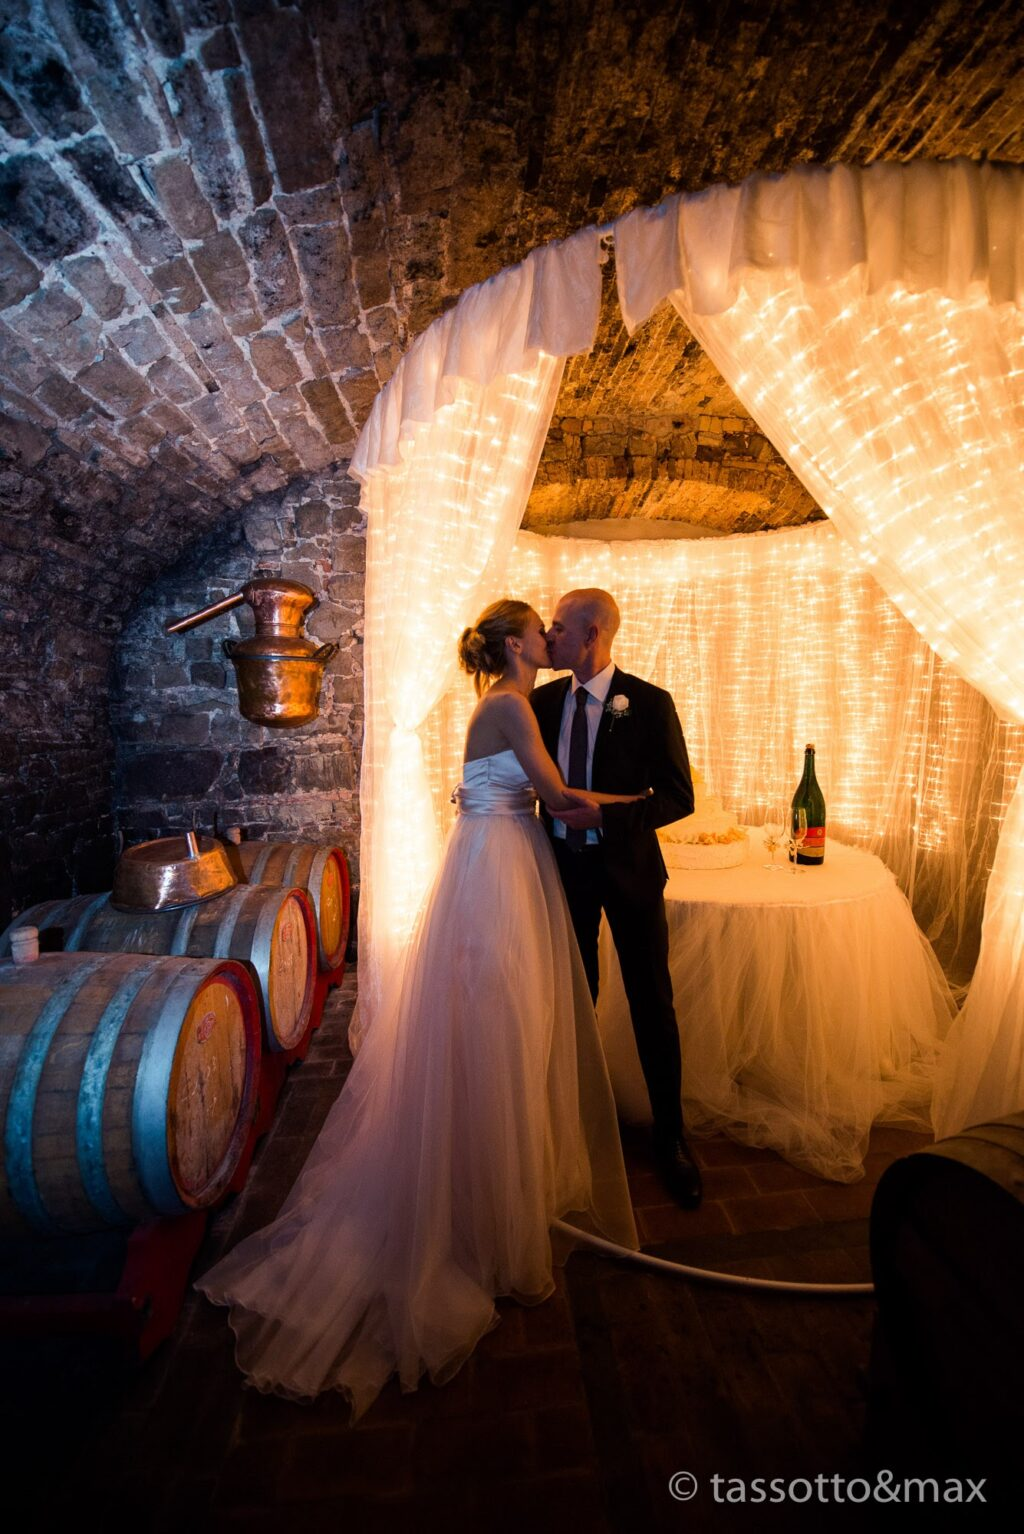 Wedding couple kissing in a medieval wine cellar, set up for the cake cut